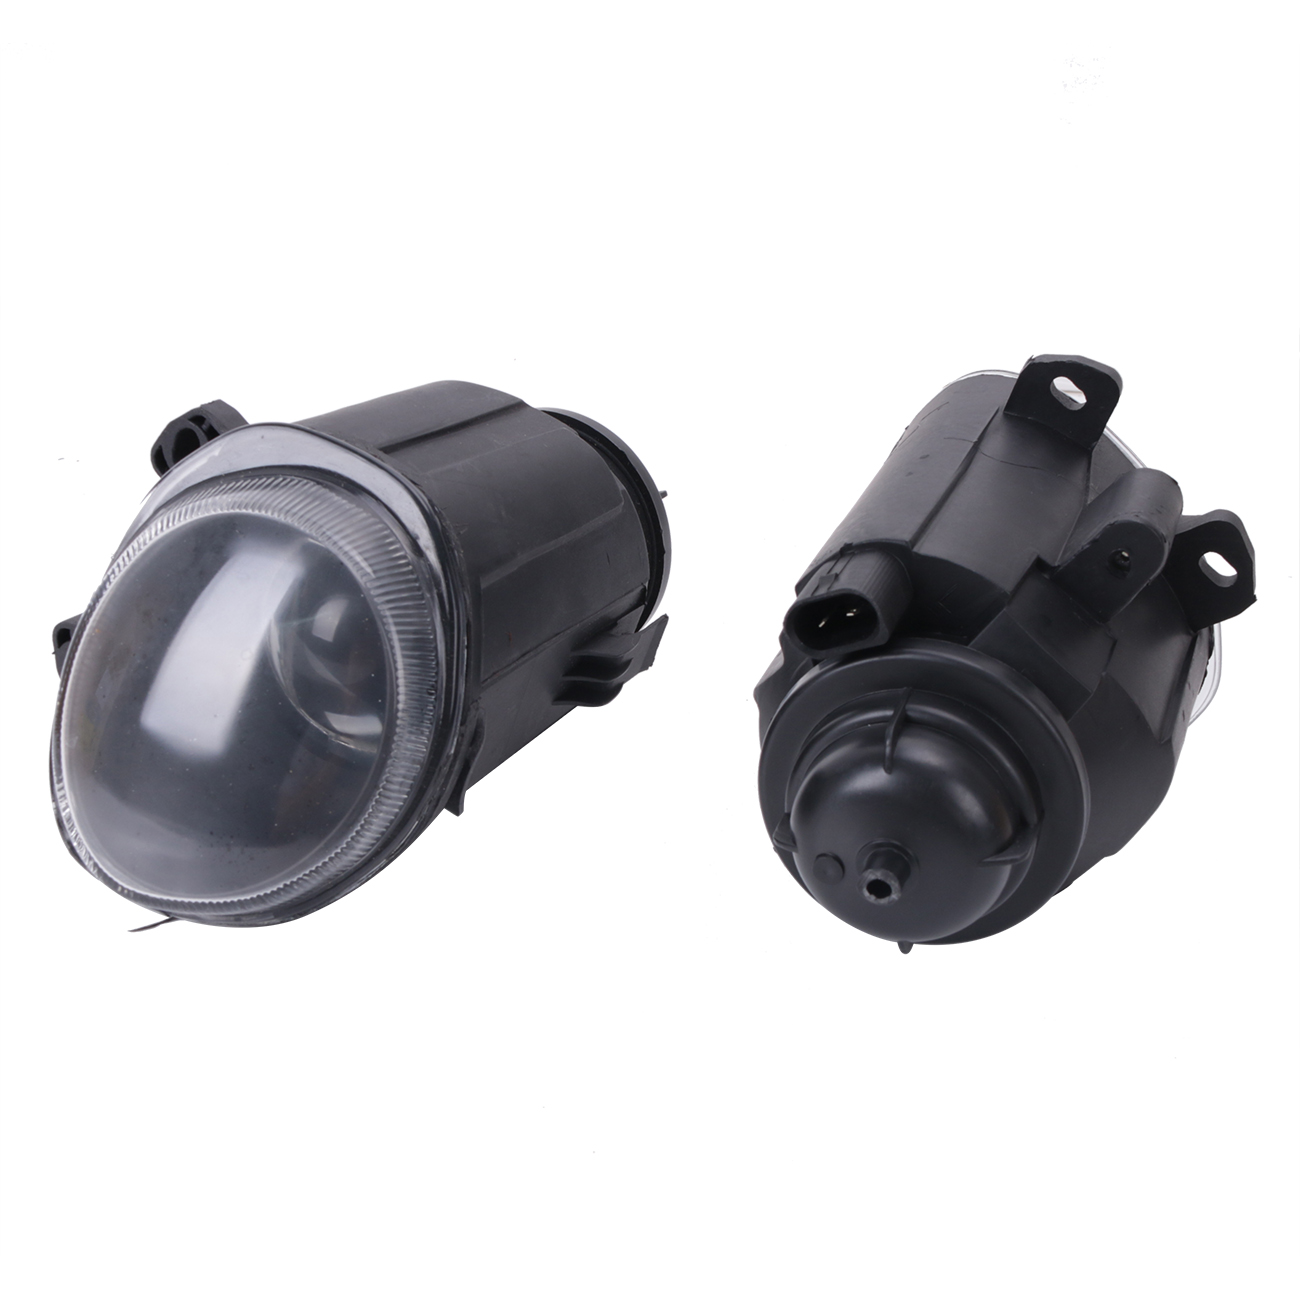 Car Fog Lights for BMW X5 E53 2000 - 2002 Left & Right Front Fog Light Lamps Cover without Bulbs Replacement 63178409025/6 // защитные аксессуары car pakistan bmw alpina